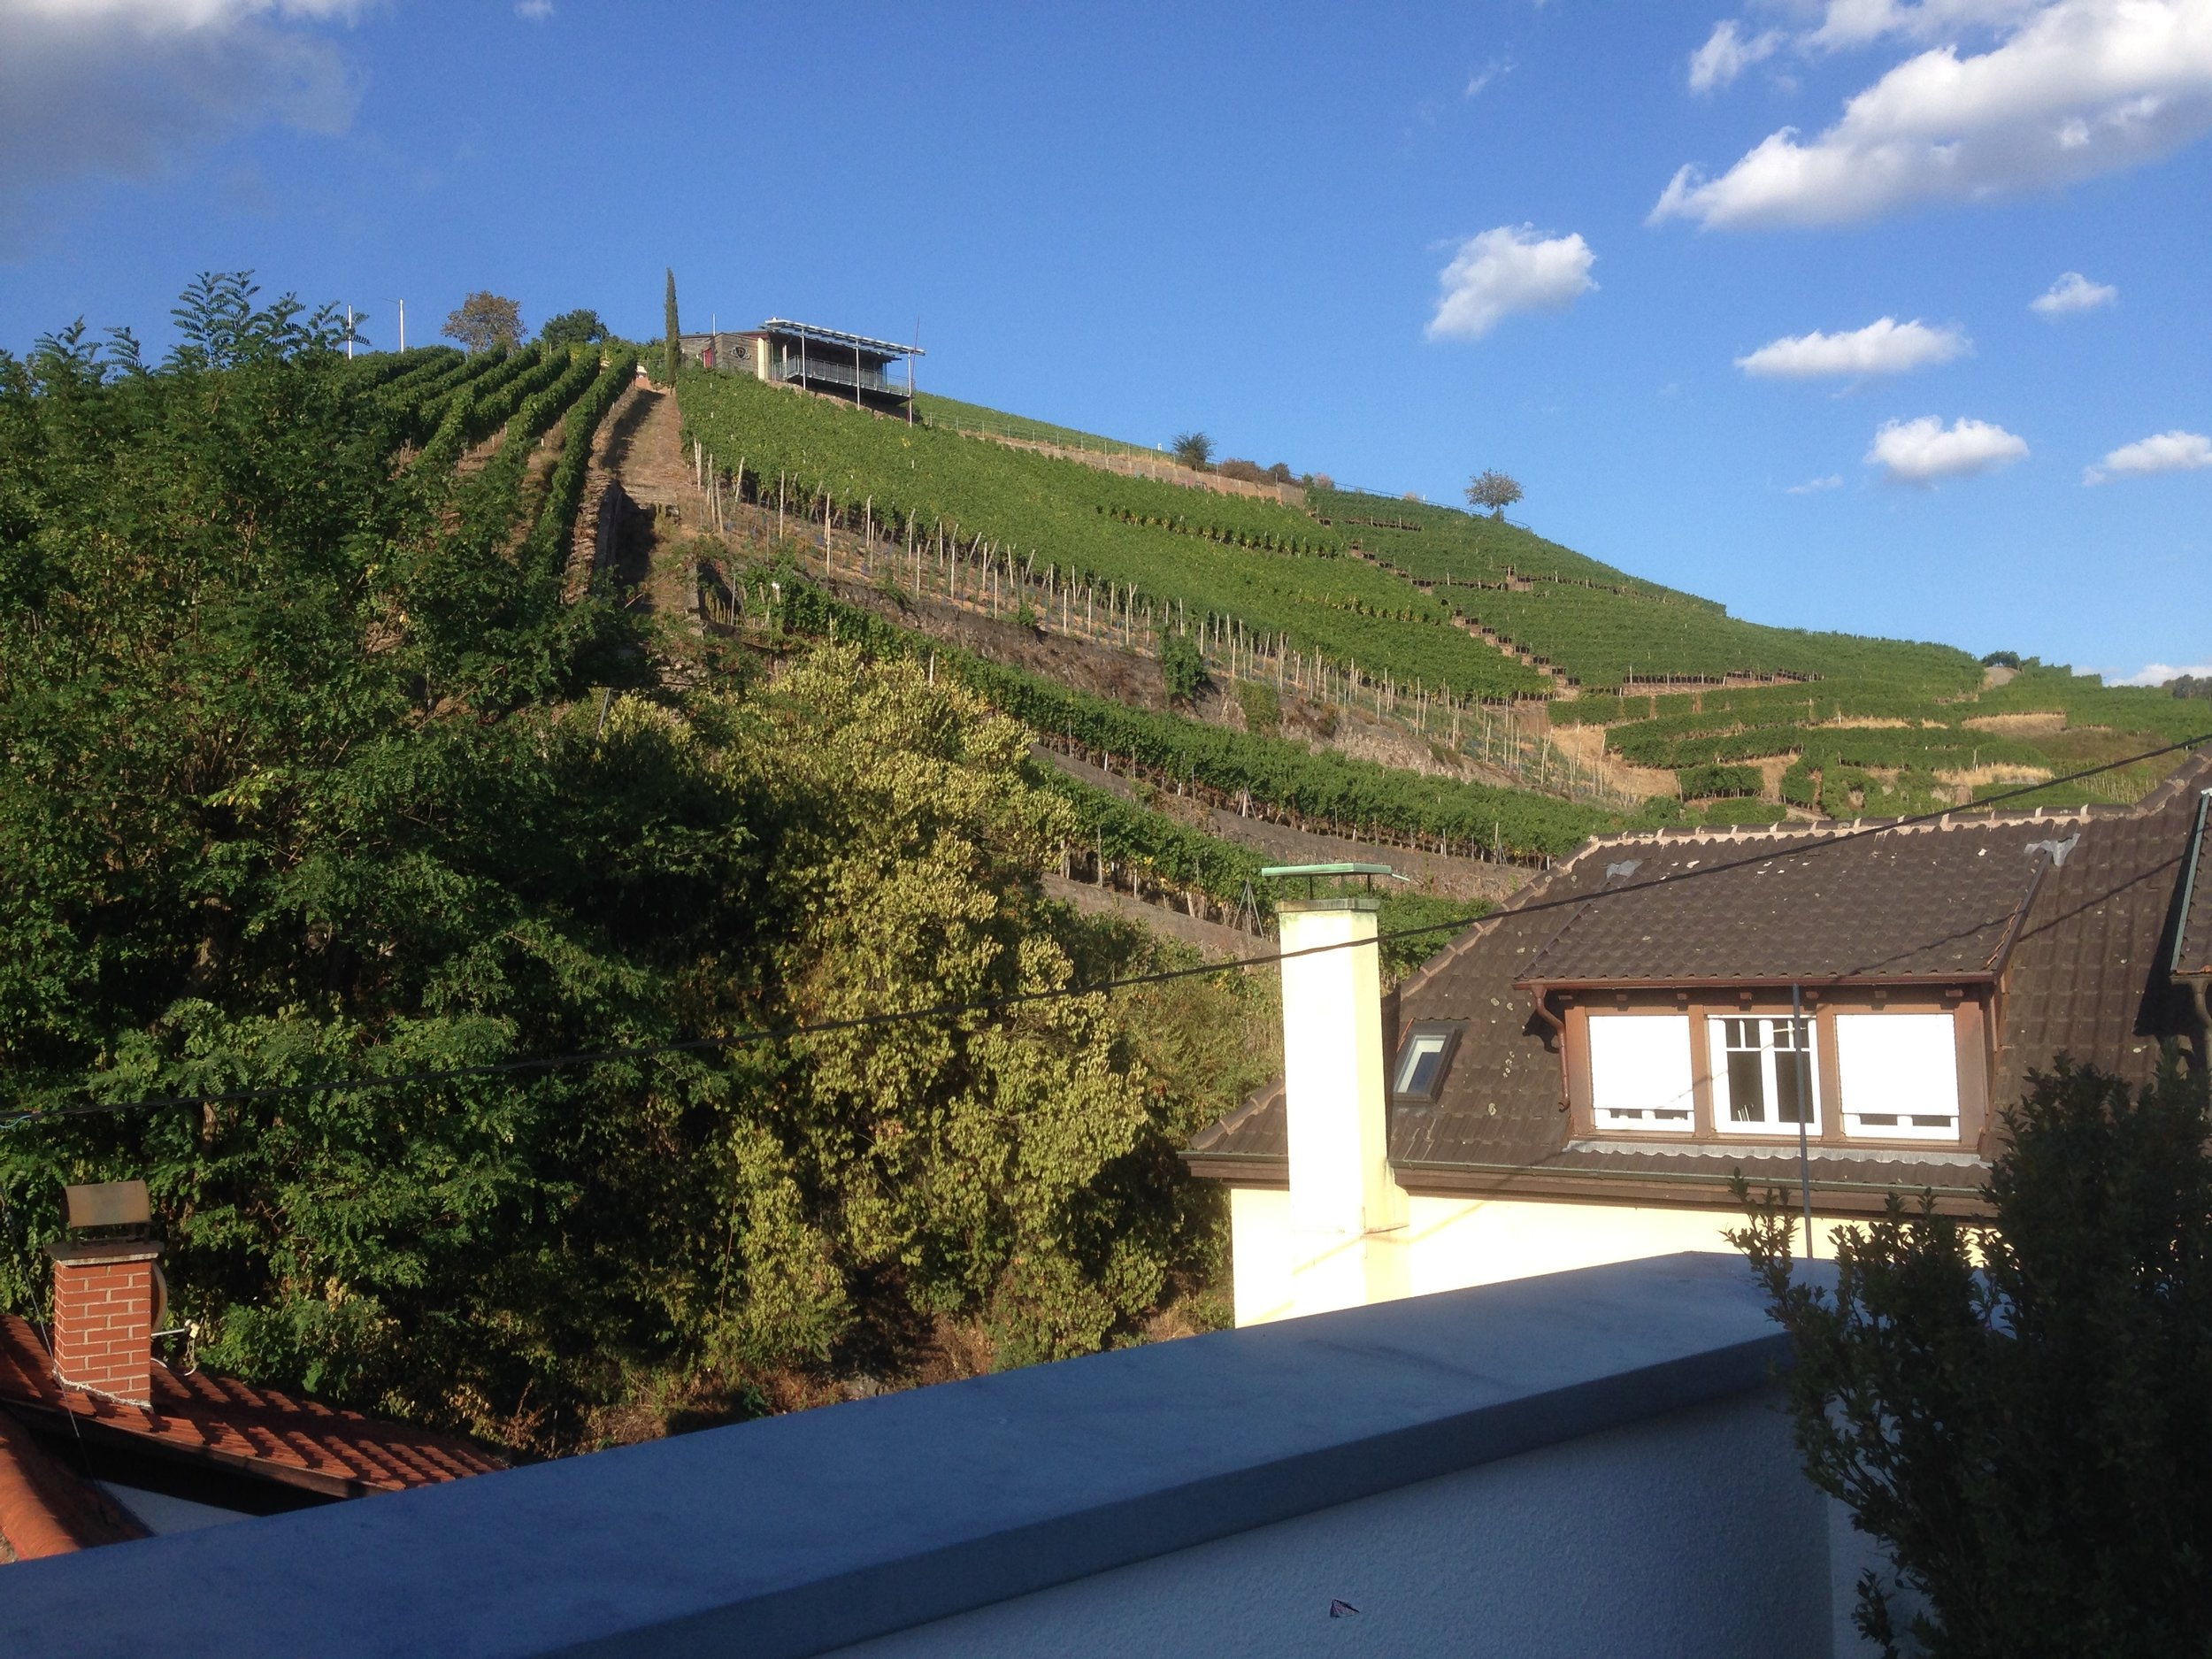 View from the Ritter Durbach spa terrace